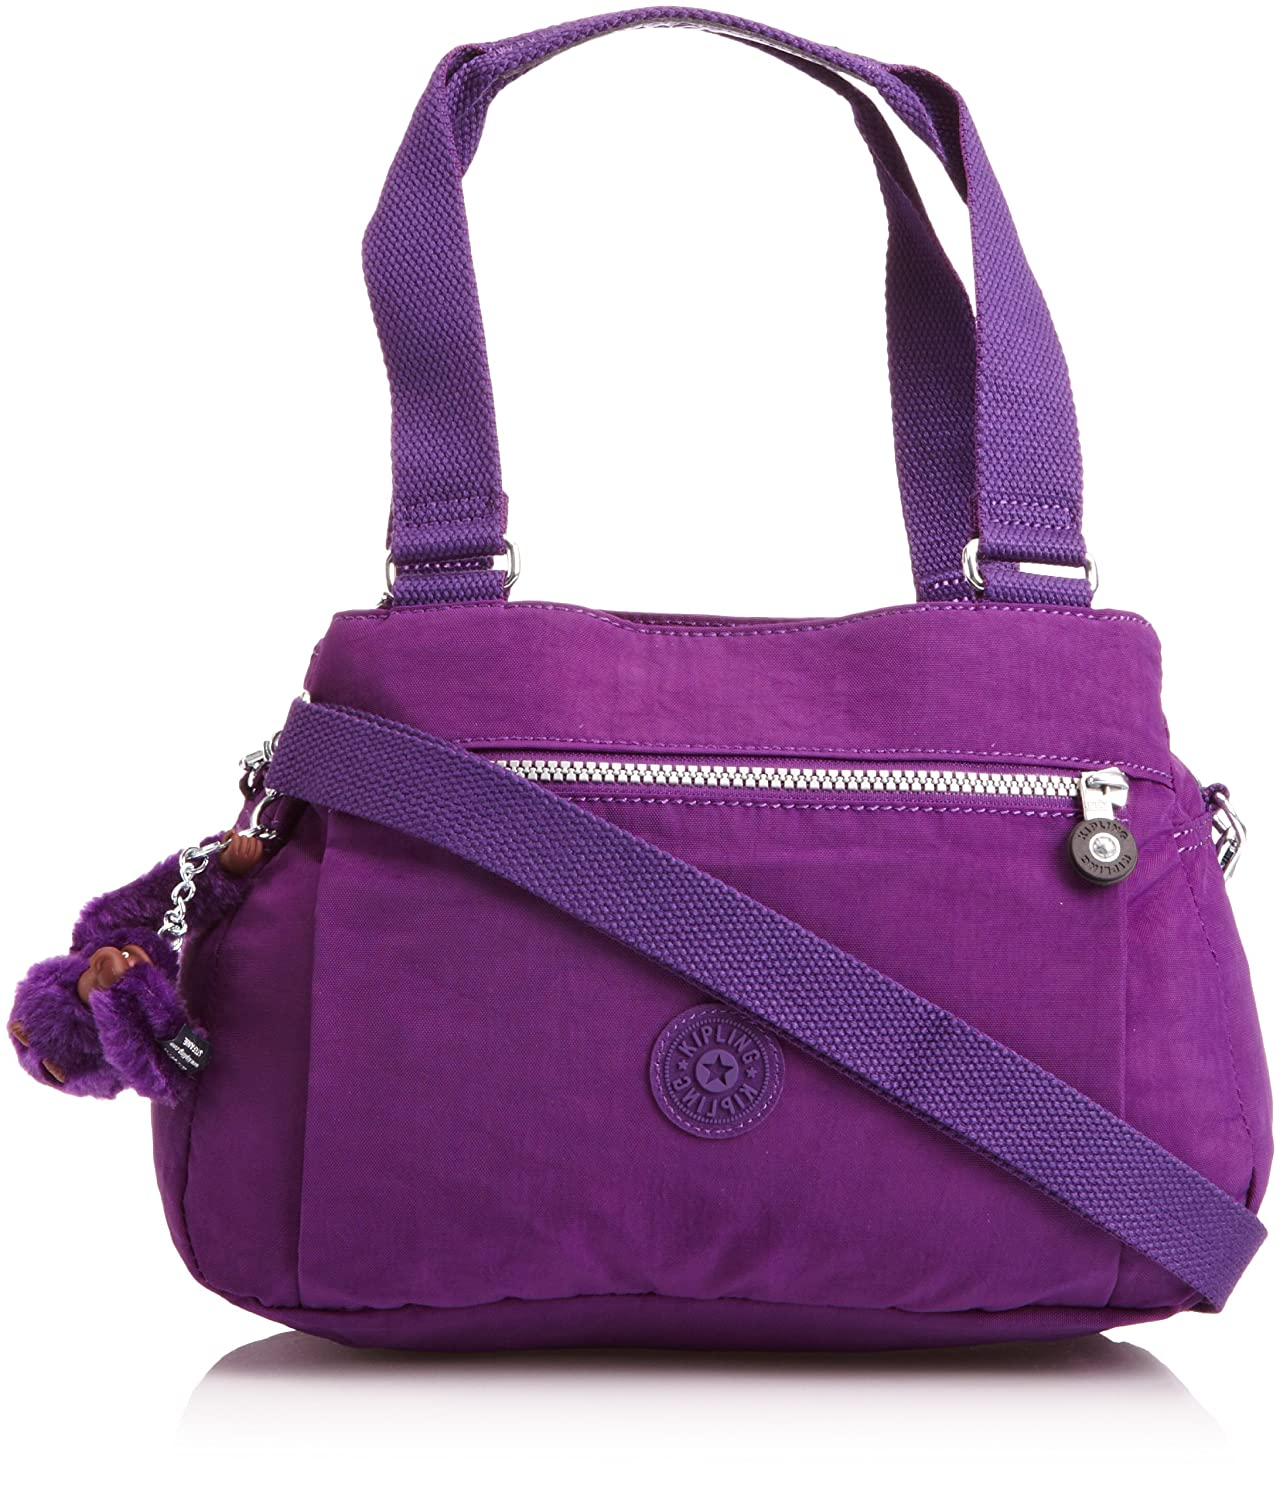 Kipling Women'S Erine Shoulder Bag 16